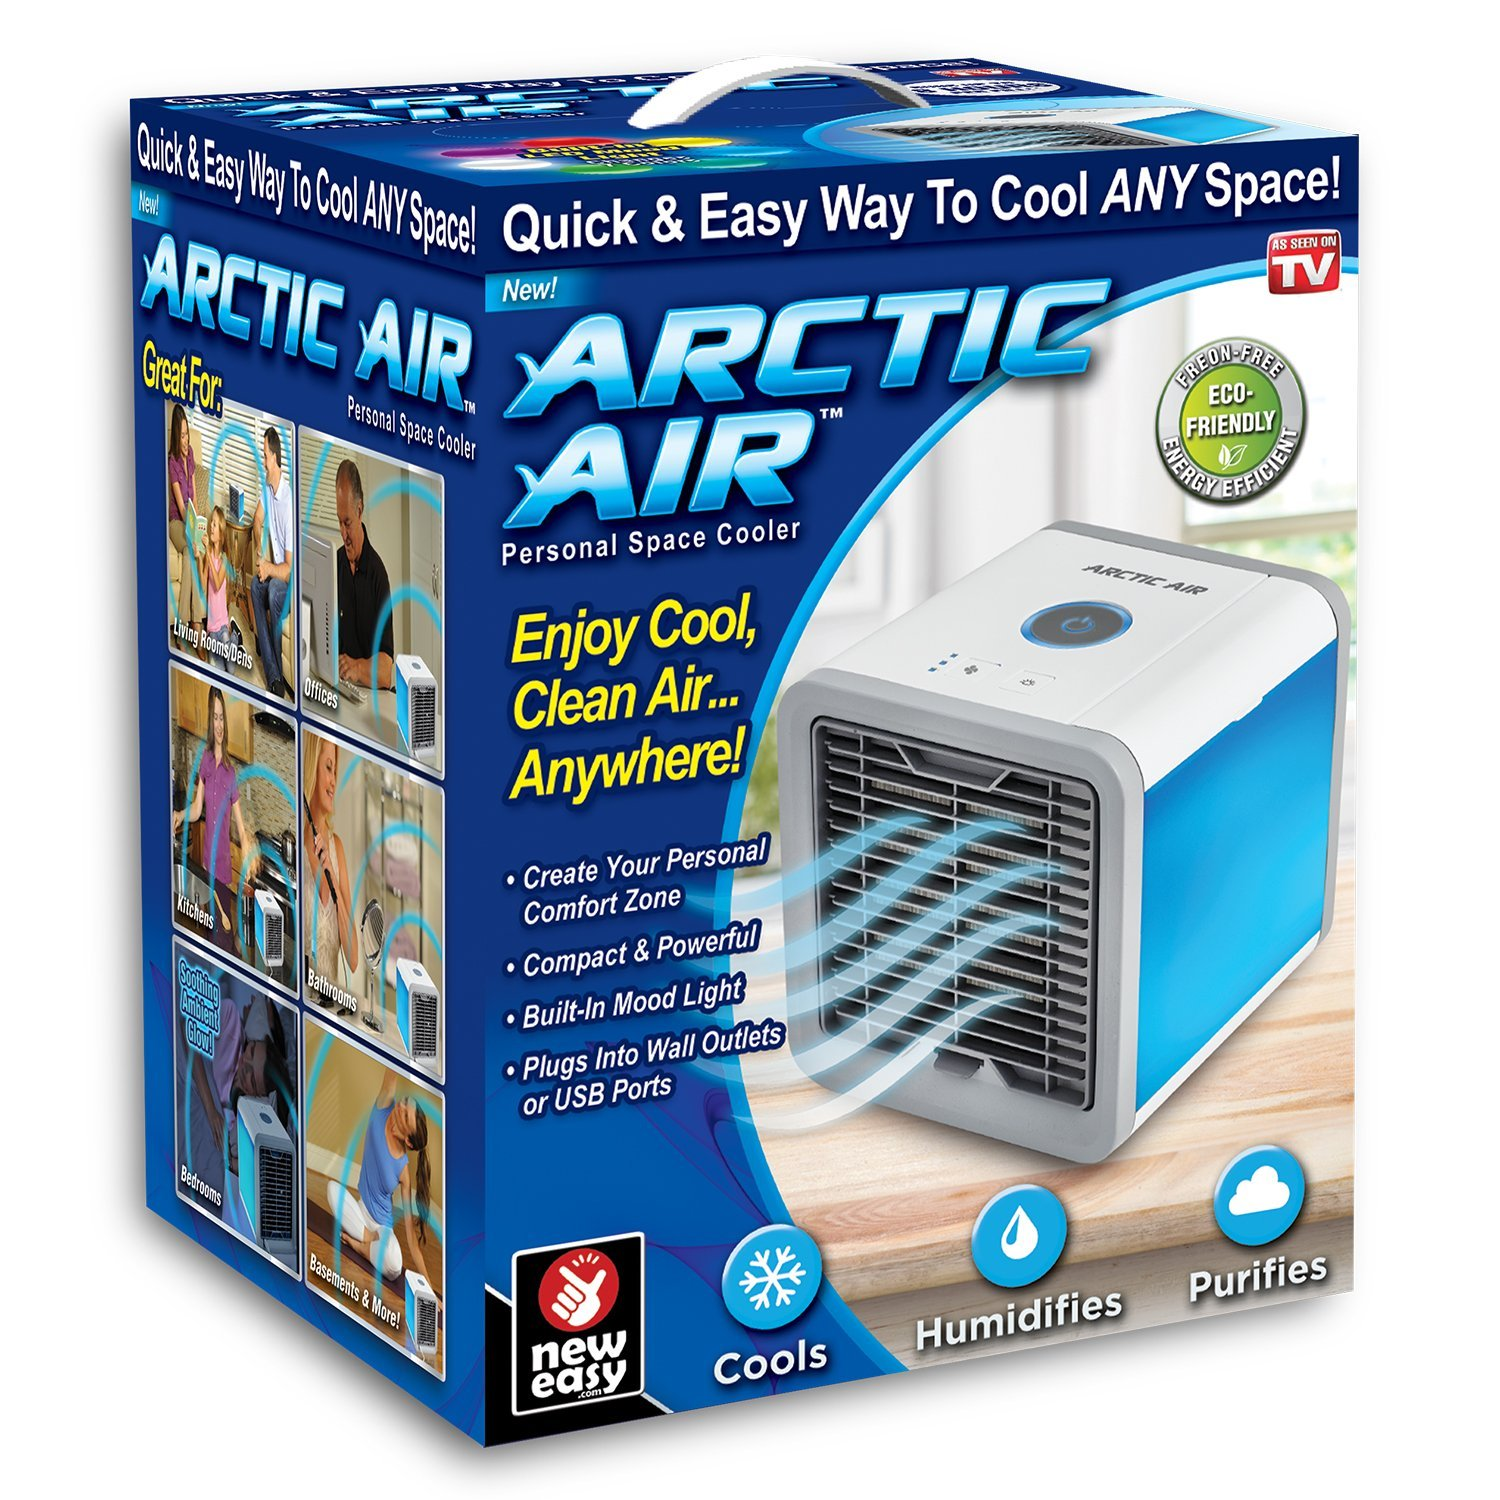 2018 Cheap Arctic Air Personal Space Cooler, Portable Air Conditioner   The Quick & Easy Way to Cool Any Space, As Seen On TV